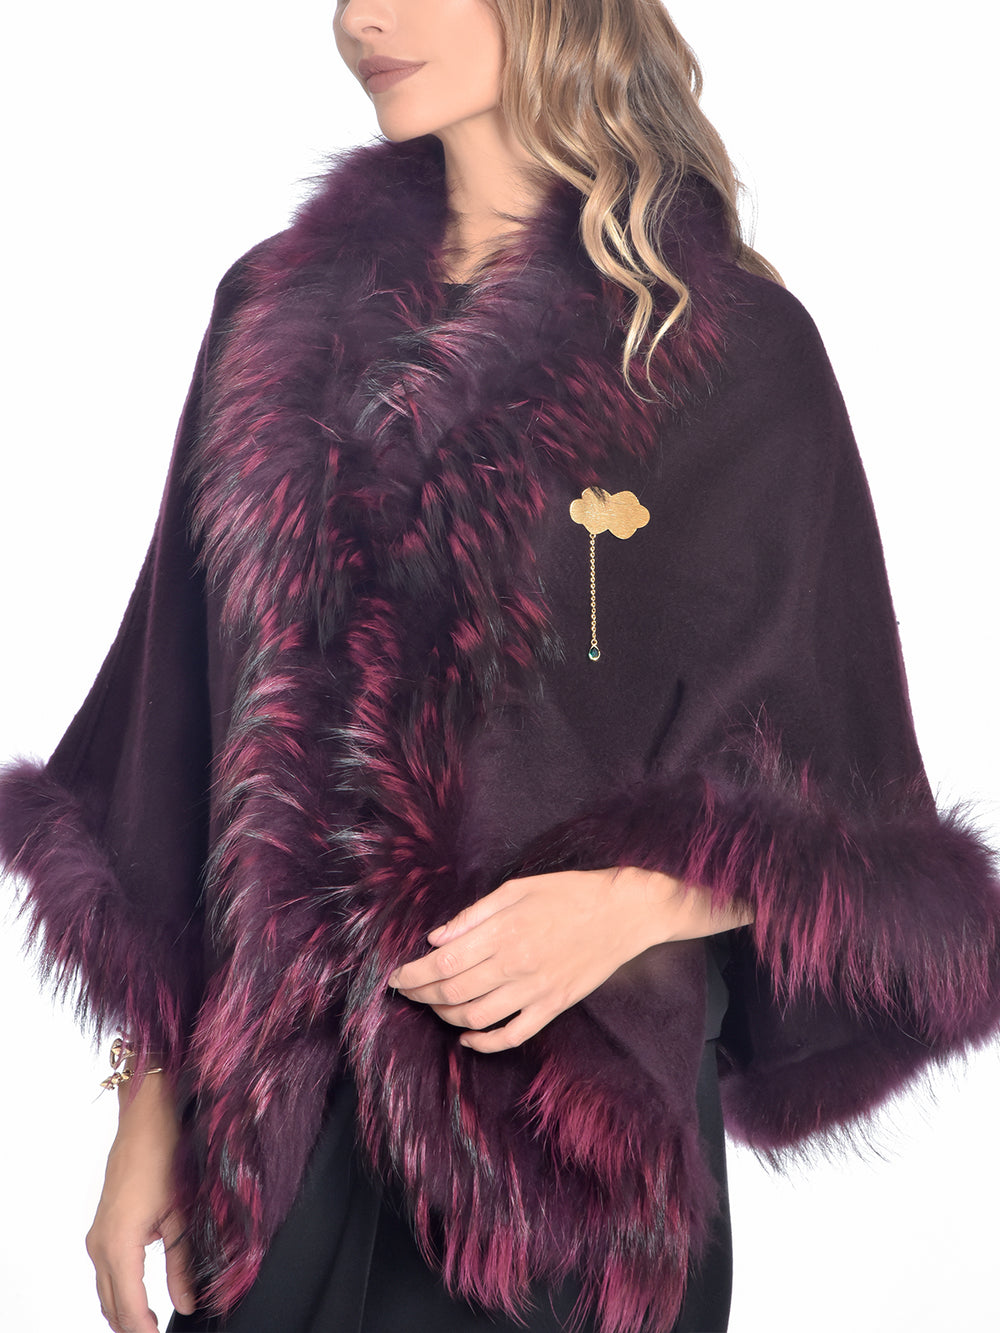 Plum Raccoon Fur Cape, CHIZELLE - elilhaam.com